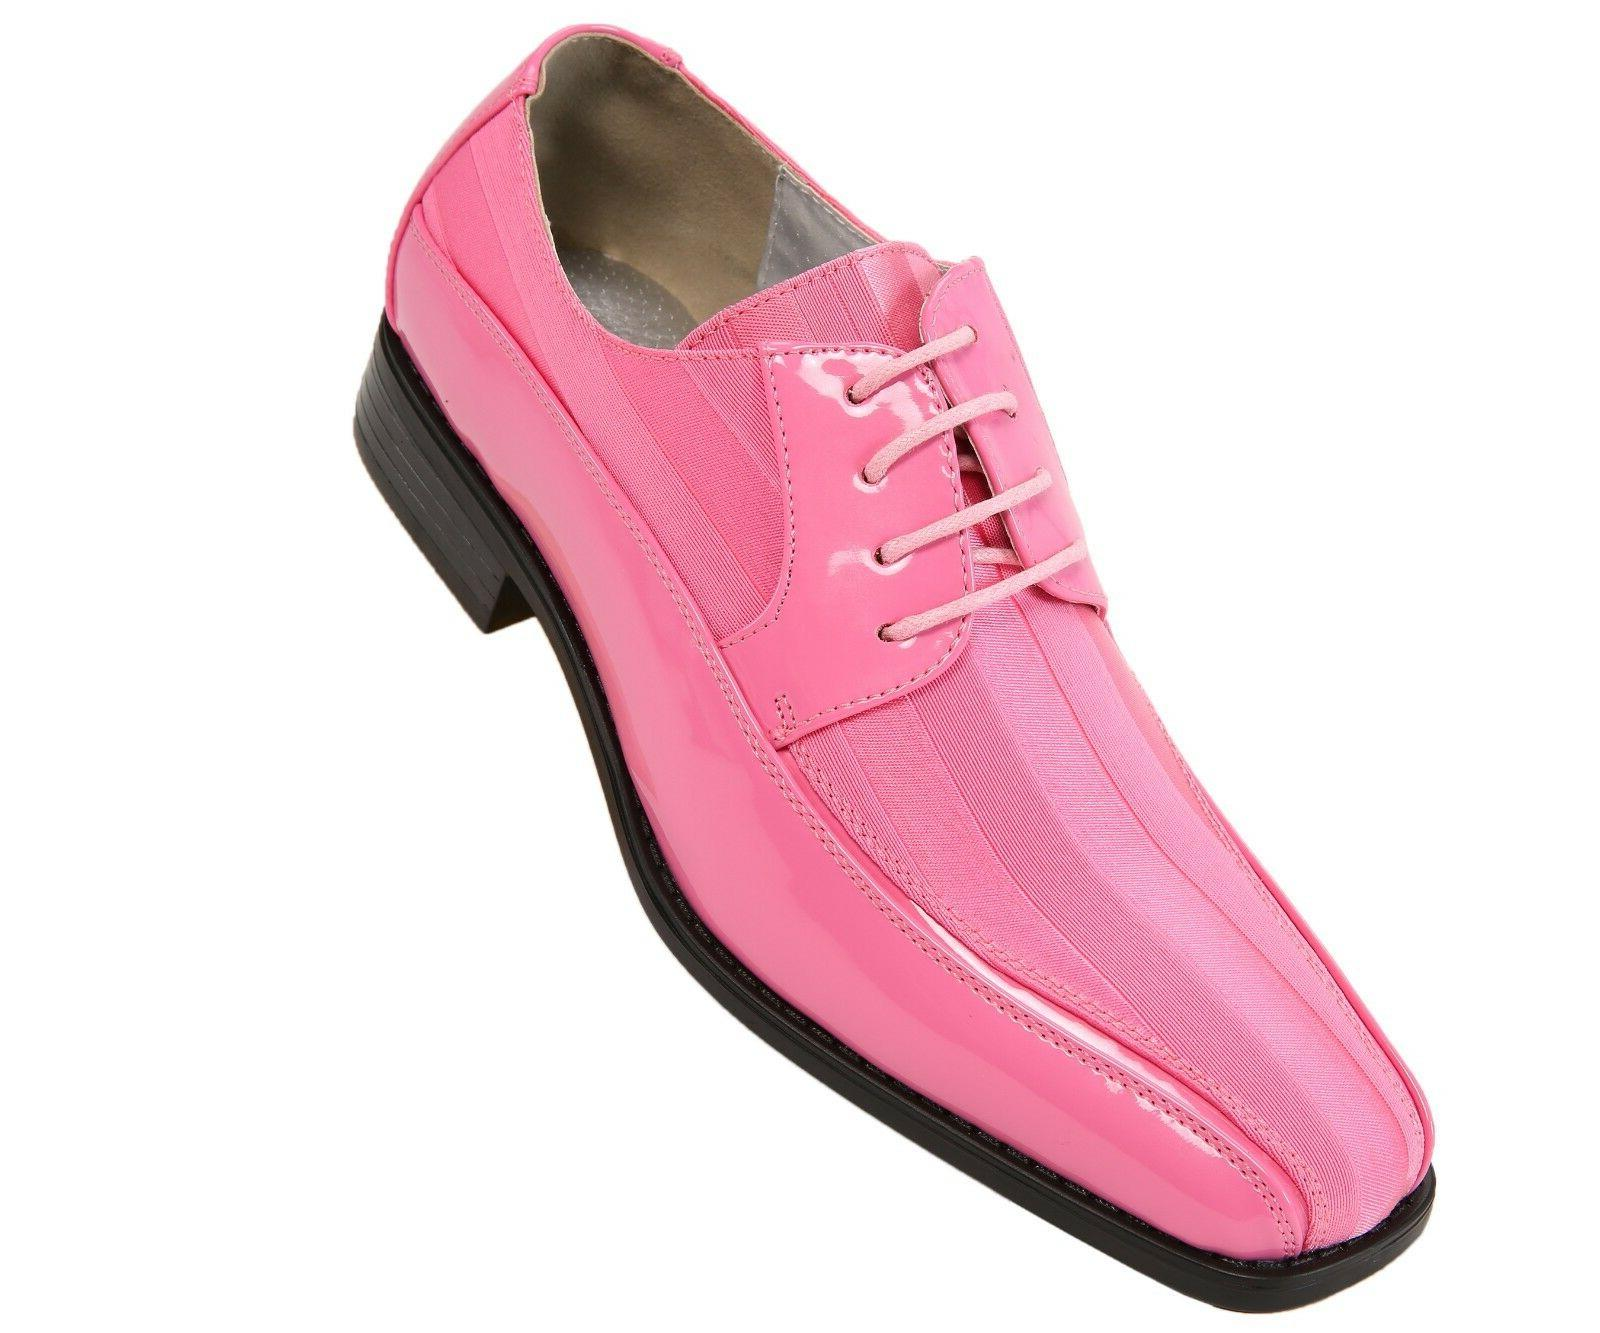 mens pink patent dress oxford w striped